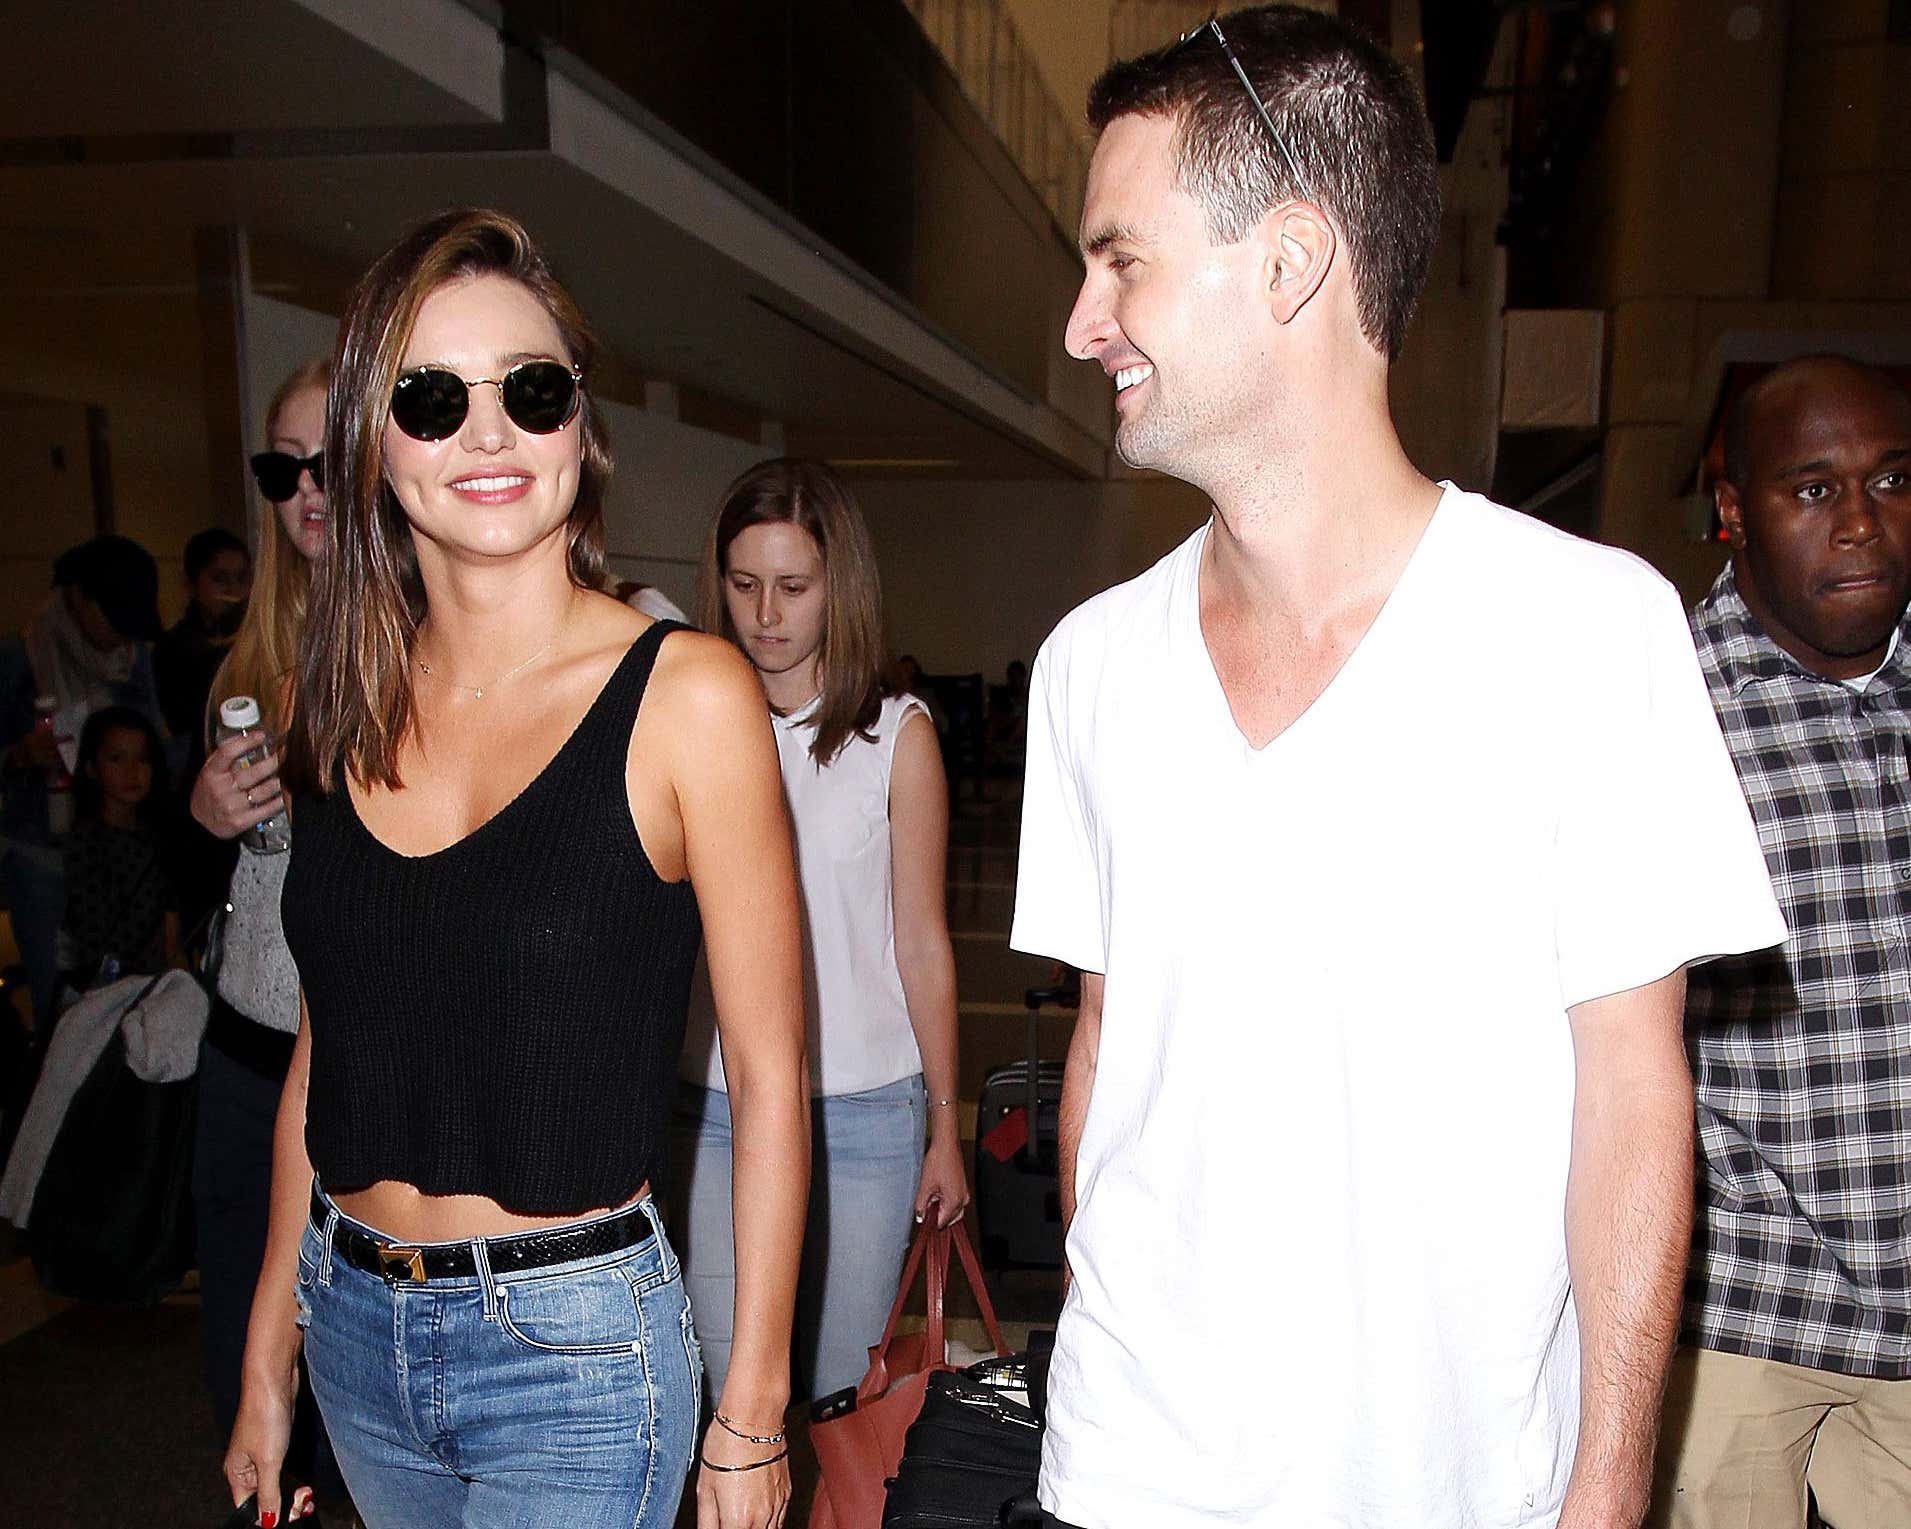 Miranda Kerr and Evan Spiegel at LAX international airport, Los Angeles, America - 12 Aug 2015